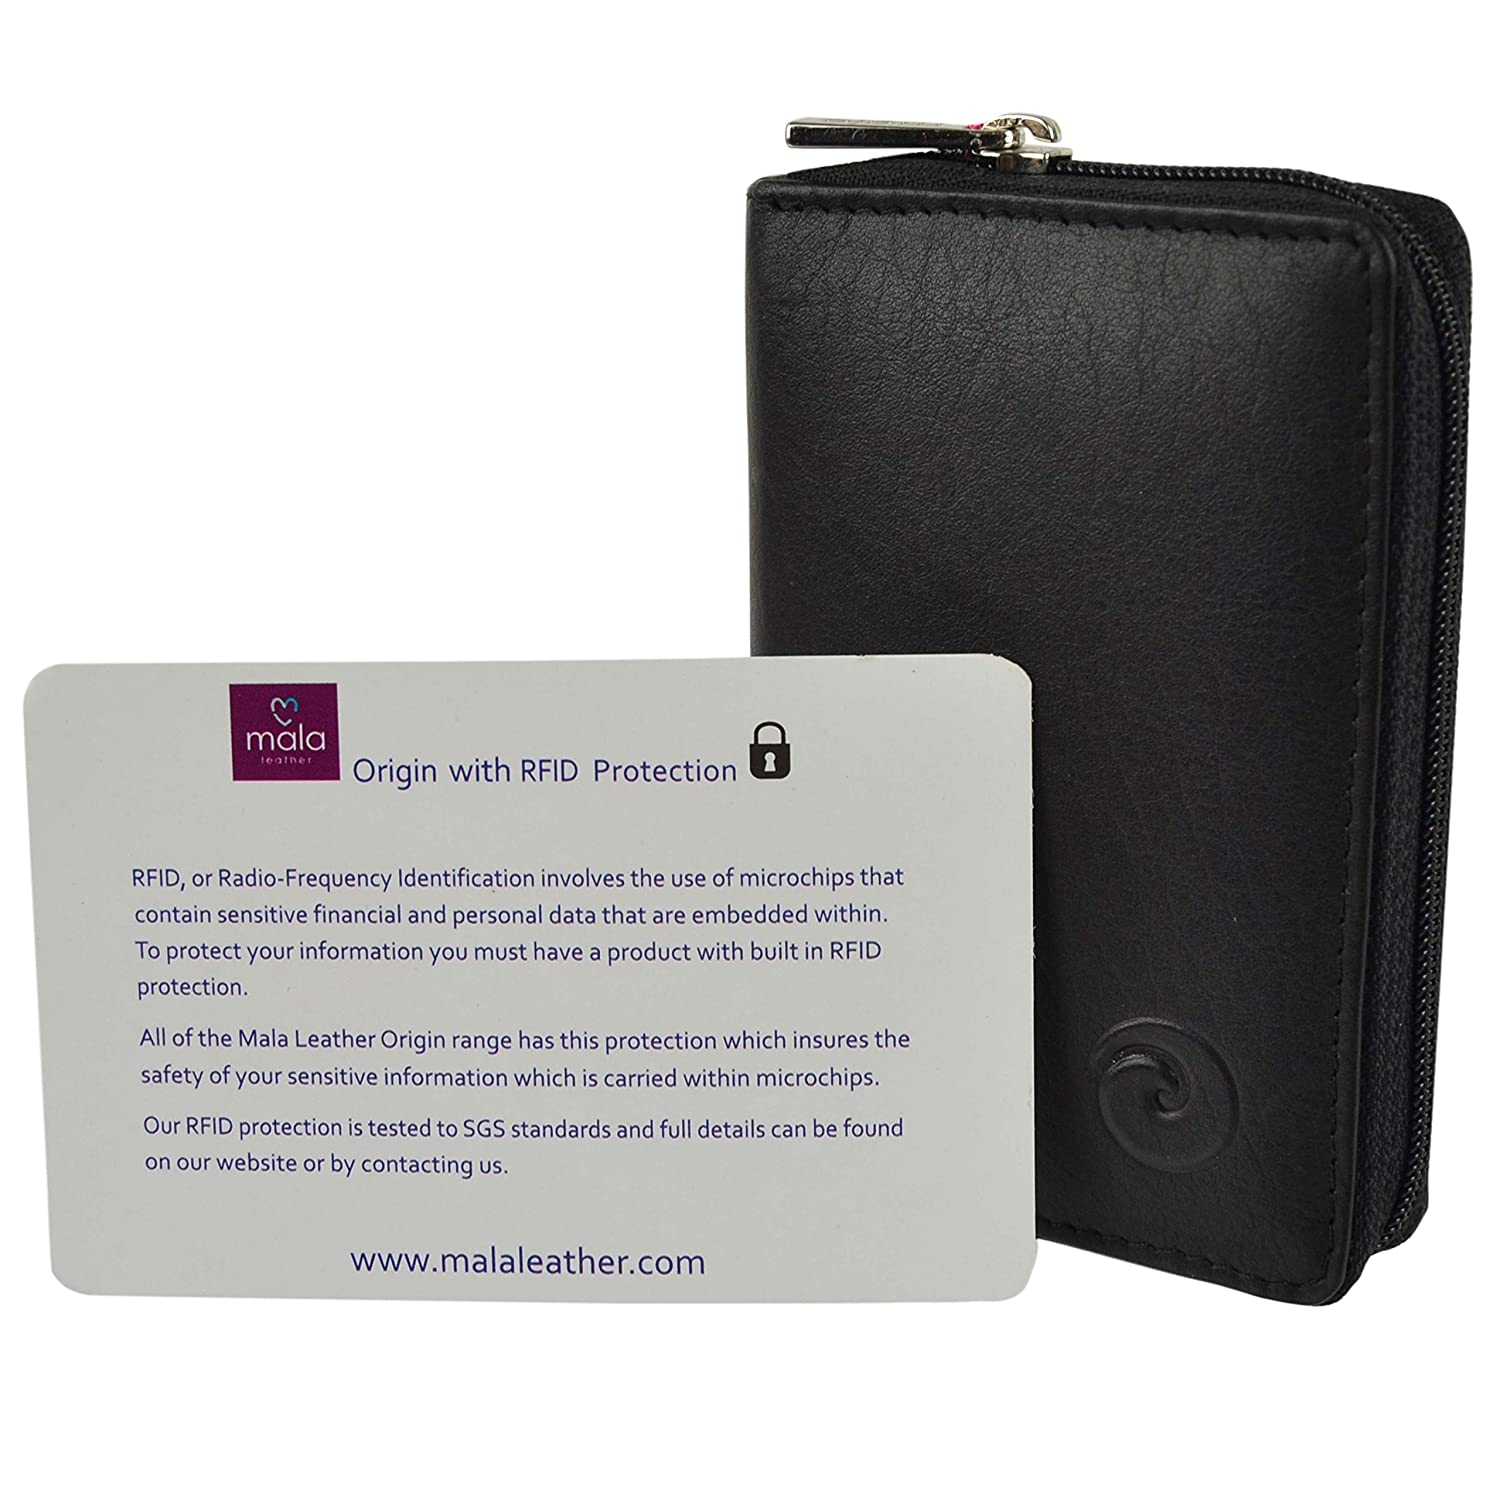 cfdb9601871 Mala Leather ORIGIN Collection Leather Concertina Credit Card Holder With  RFID Protection 552_5 Black: Amazon.co.uk: Luggage